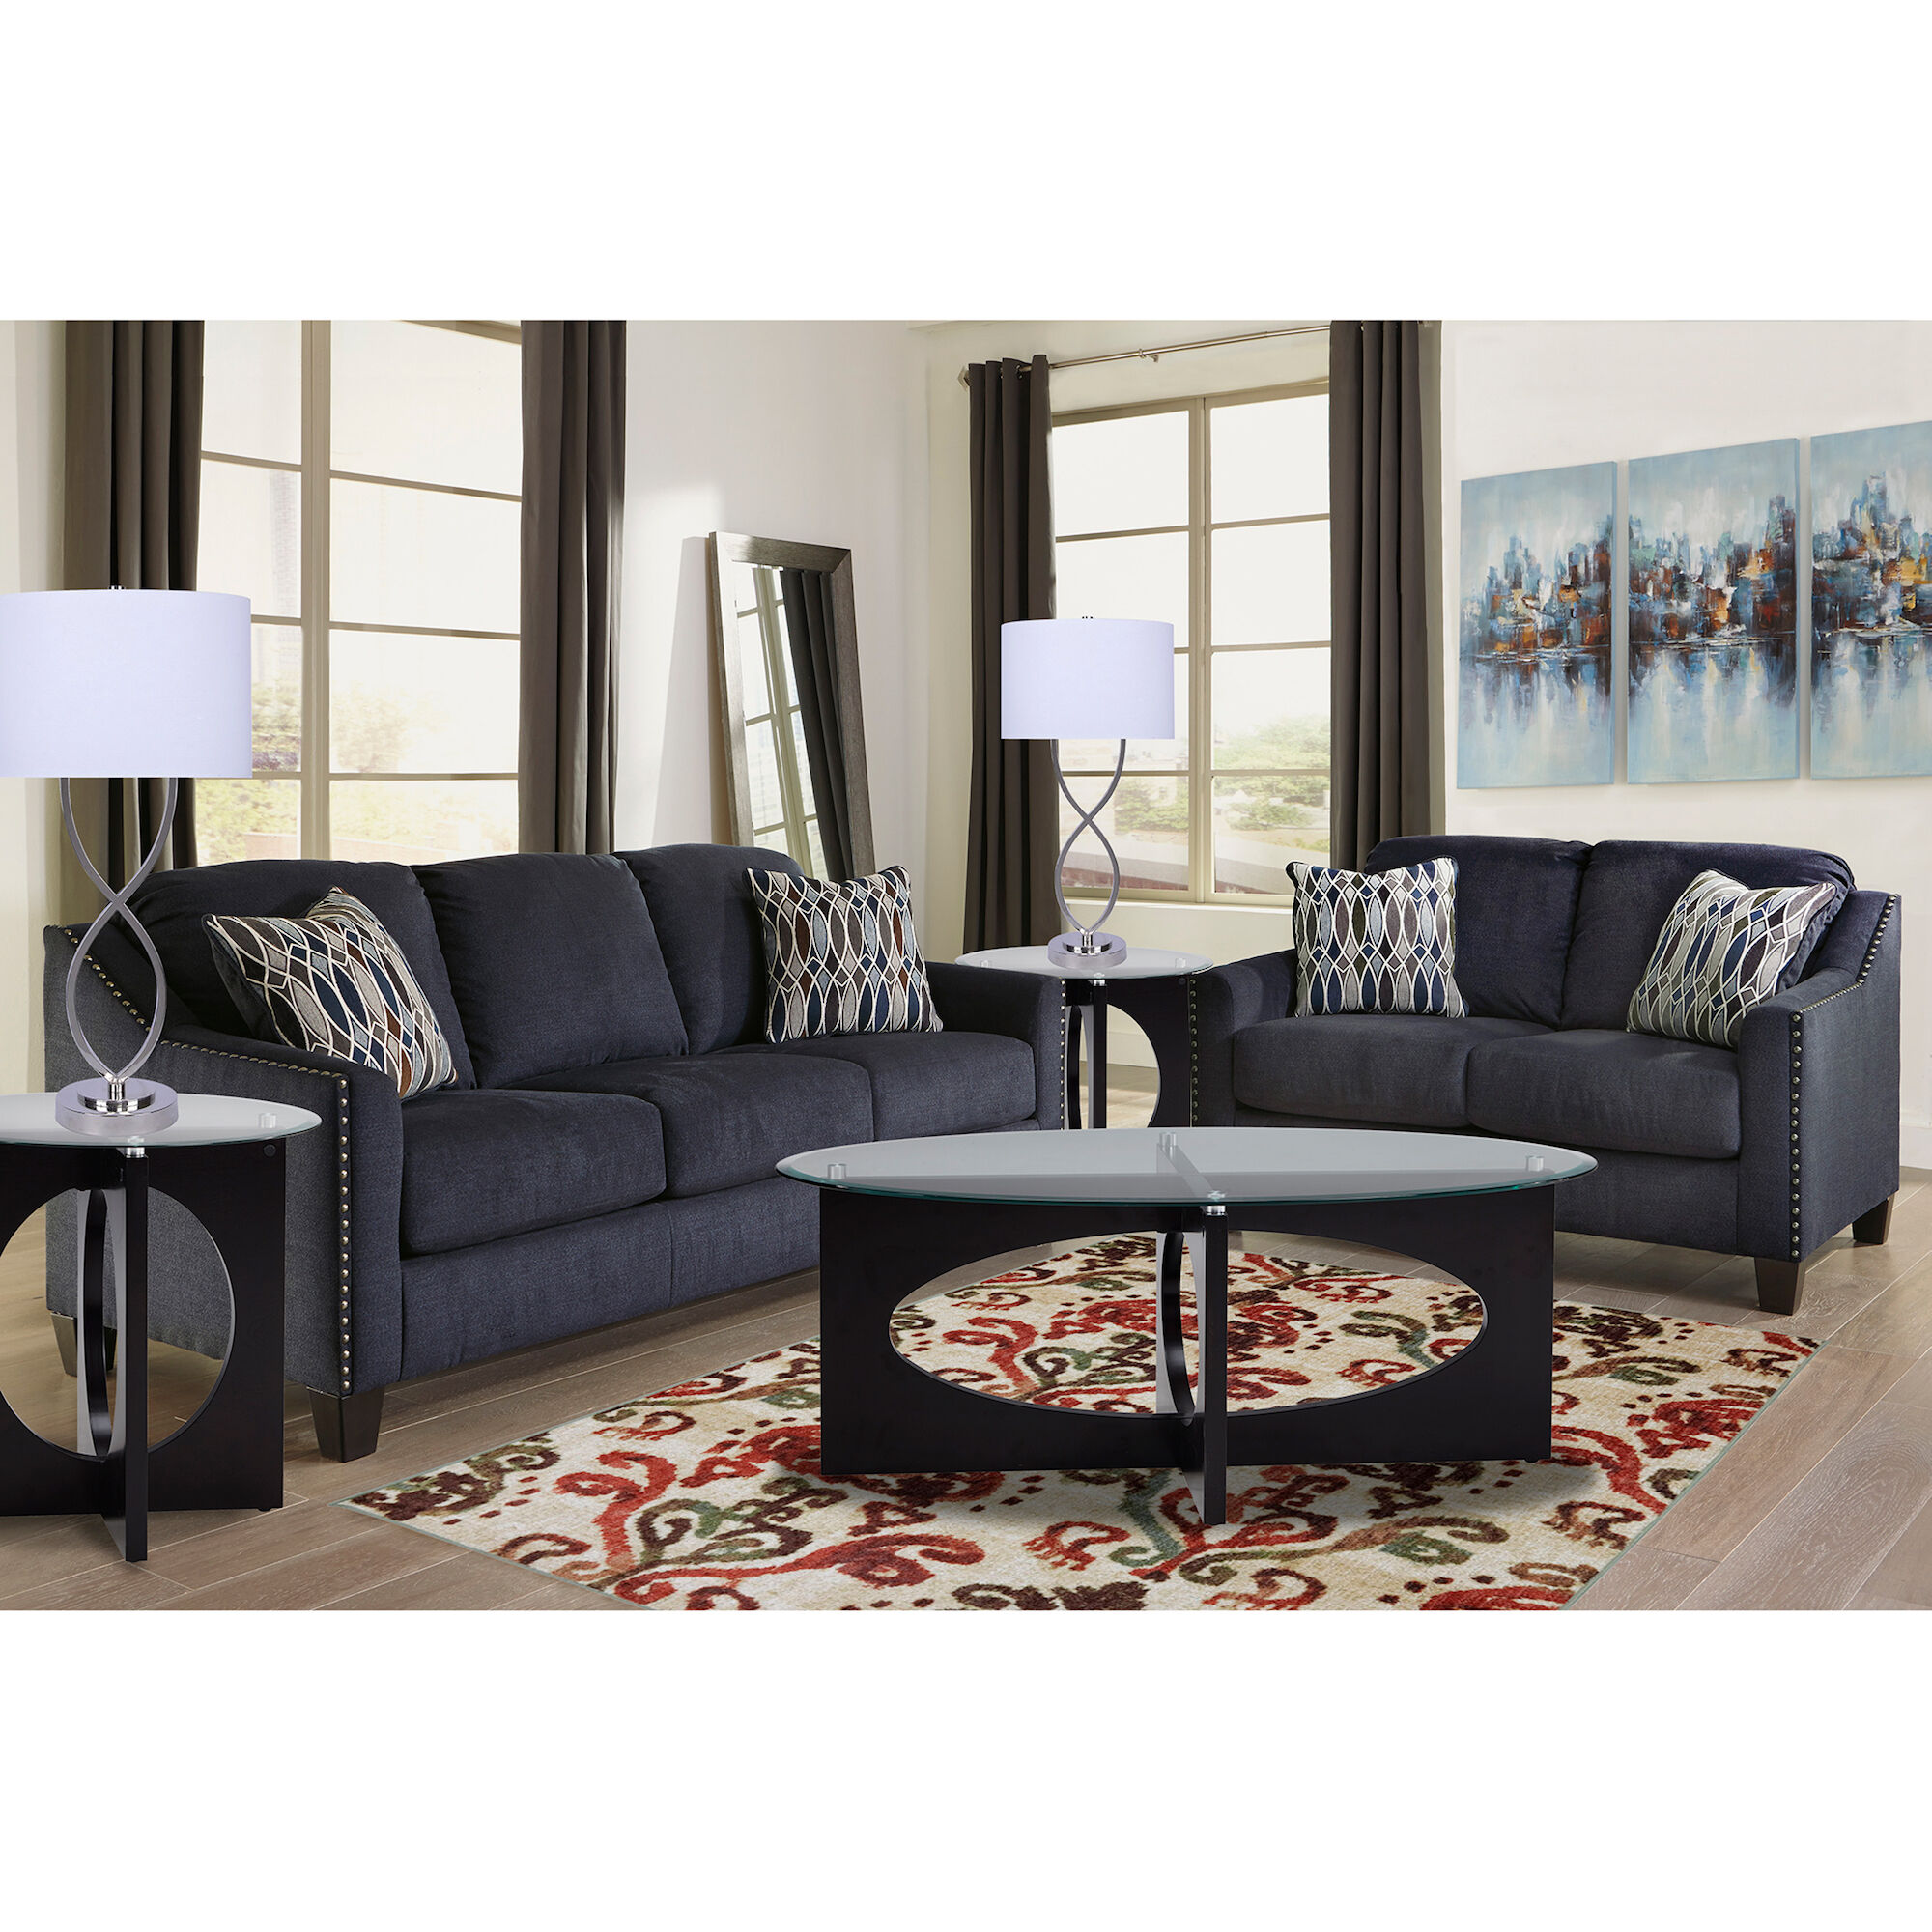 Captivating 2 Piece Creeal Heights Living Room Collection